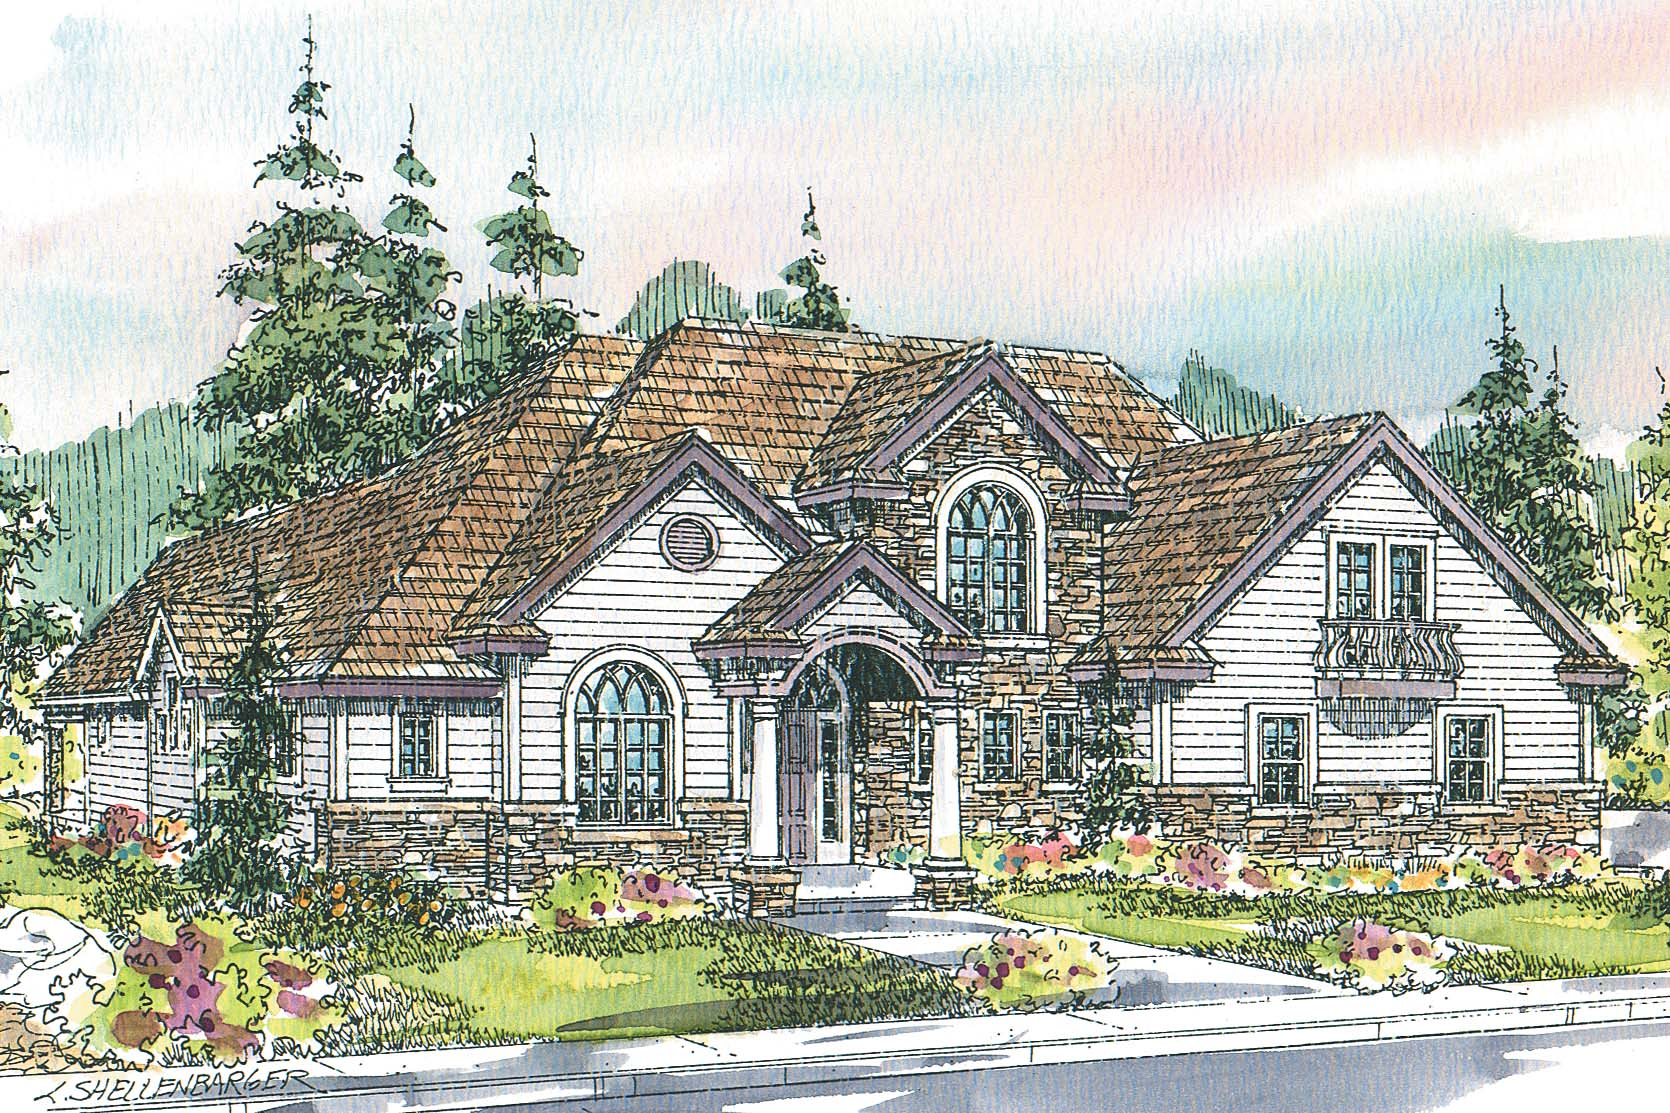 European House Plan, Home Plan, Featured House Plan of the Week, Southwick 30-482